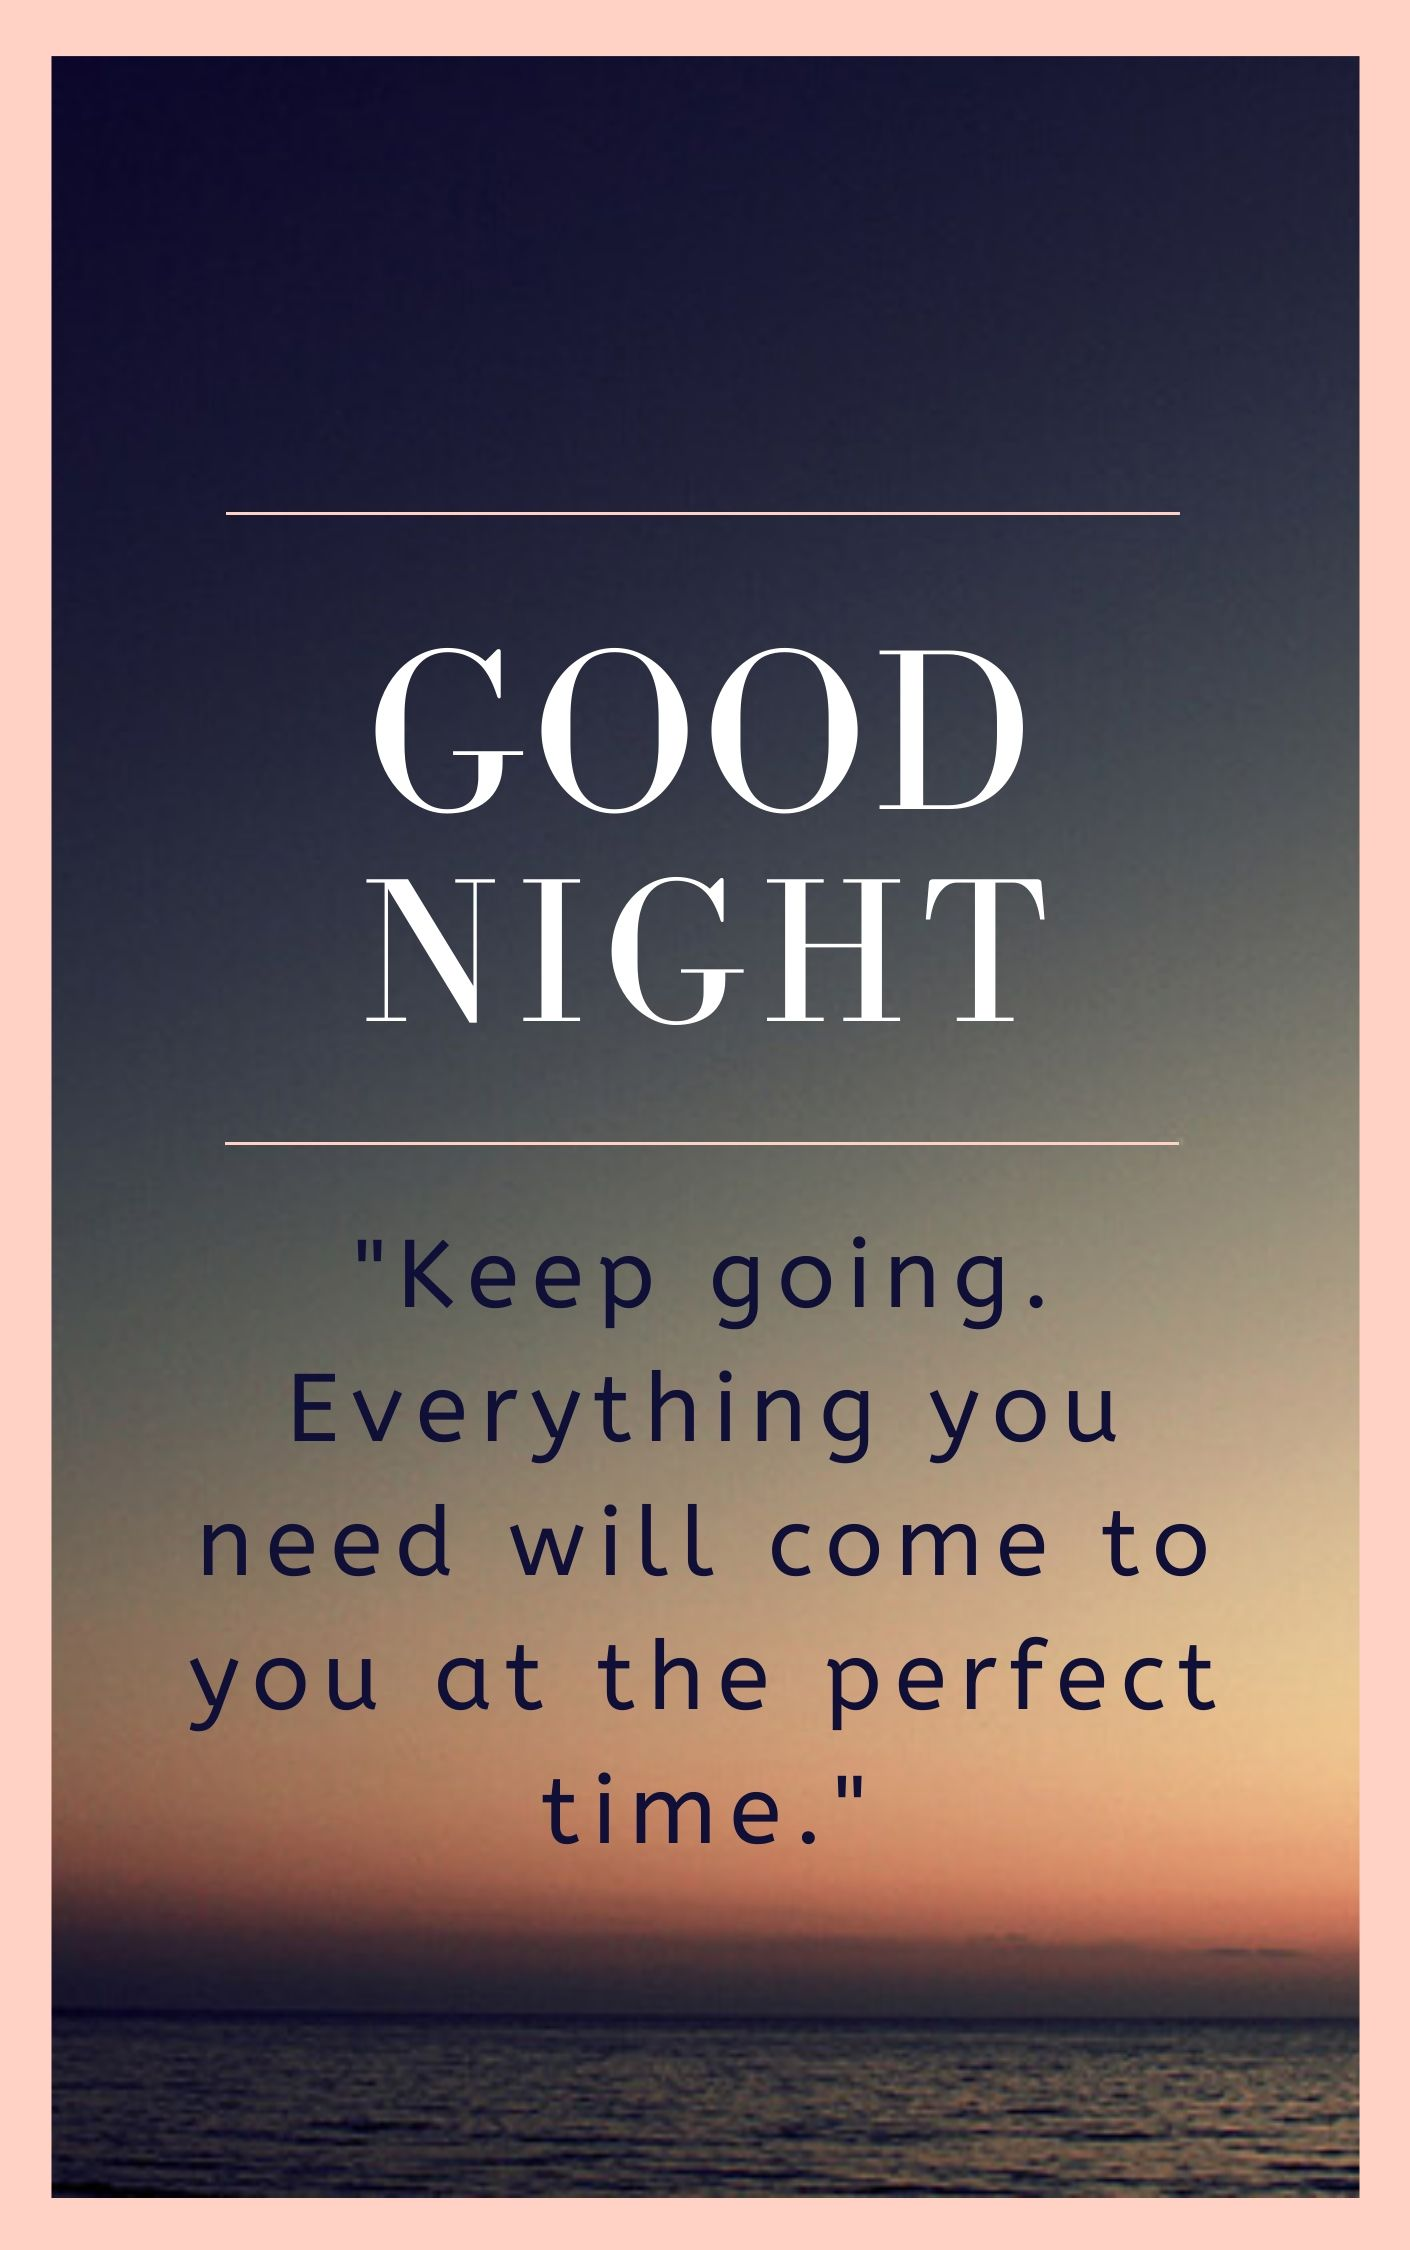 Good Night Quote Image 22Keep going. Everything you need will come to you at the perfect time.22 full HD free download.